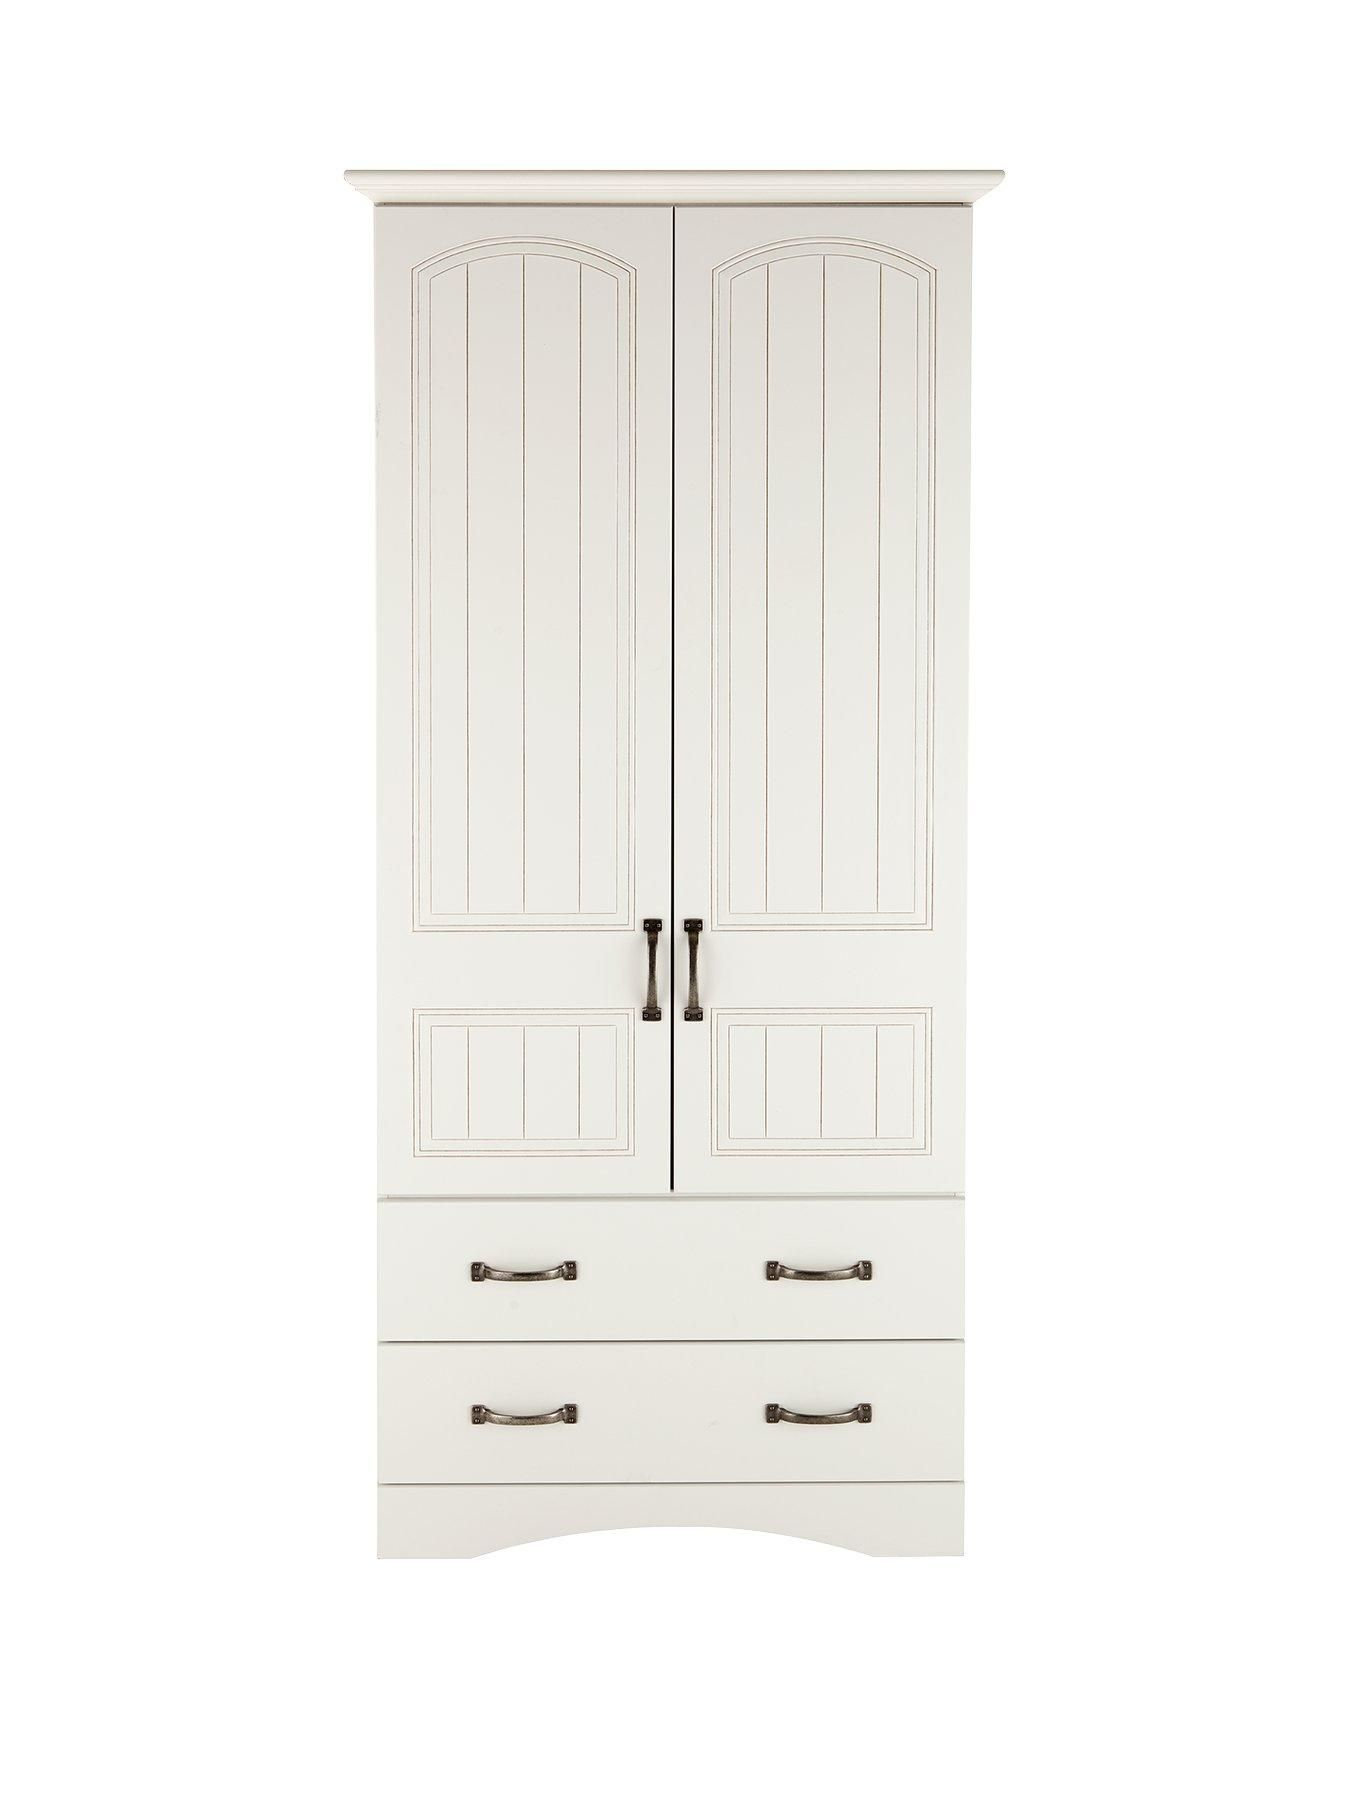 Consort Corby Ready Assembled 2 Door, 2 Drawer Wardrobe In White Consortu0027s  Newu2026